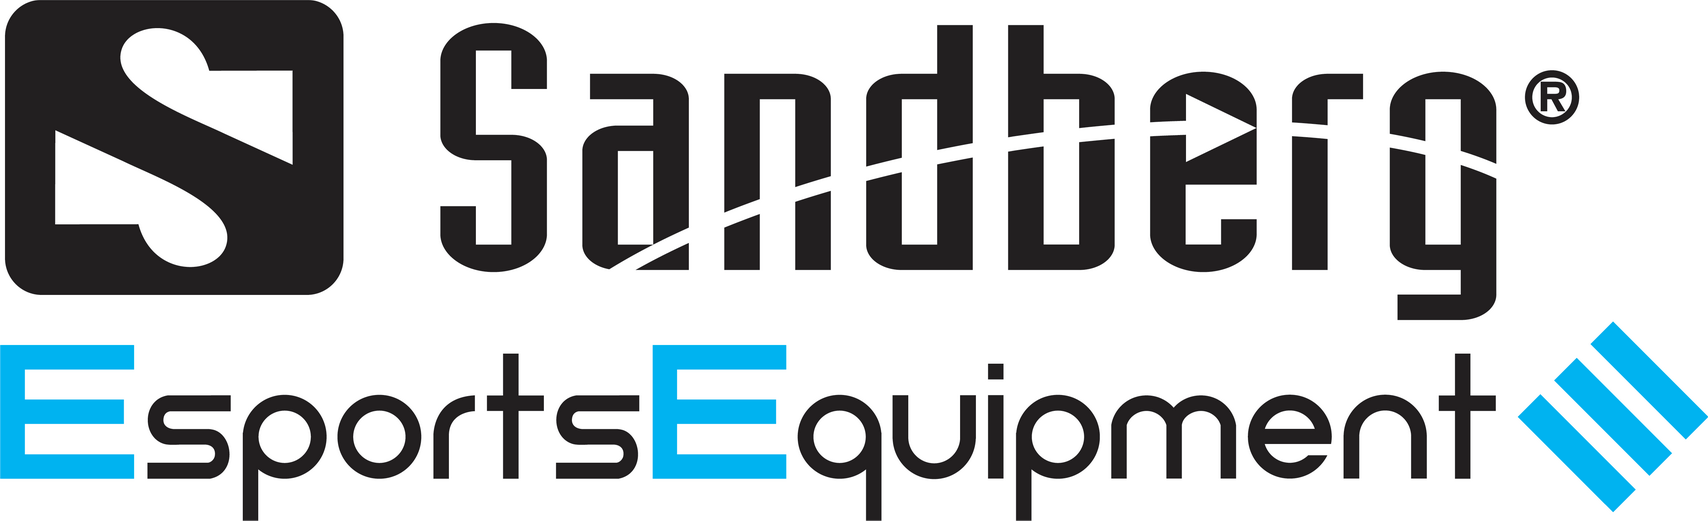 Sandberg Esports Equipment logo